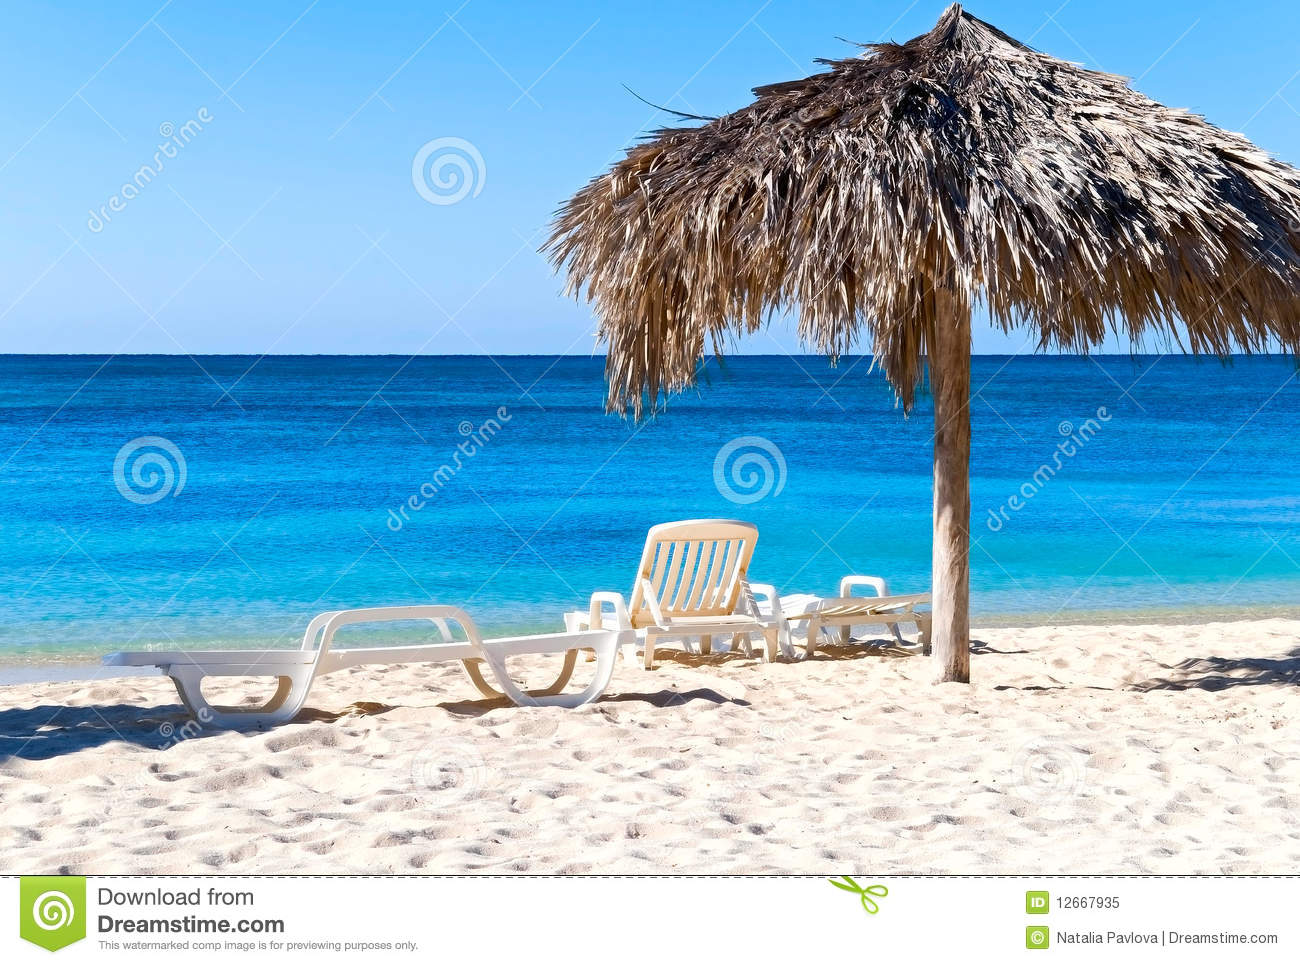 The idyllic beach with deck chairs and umbrella, Ancon, Cuba.